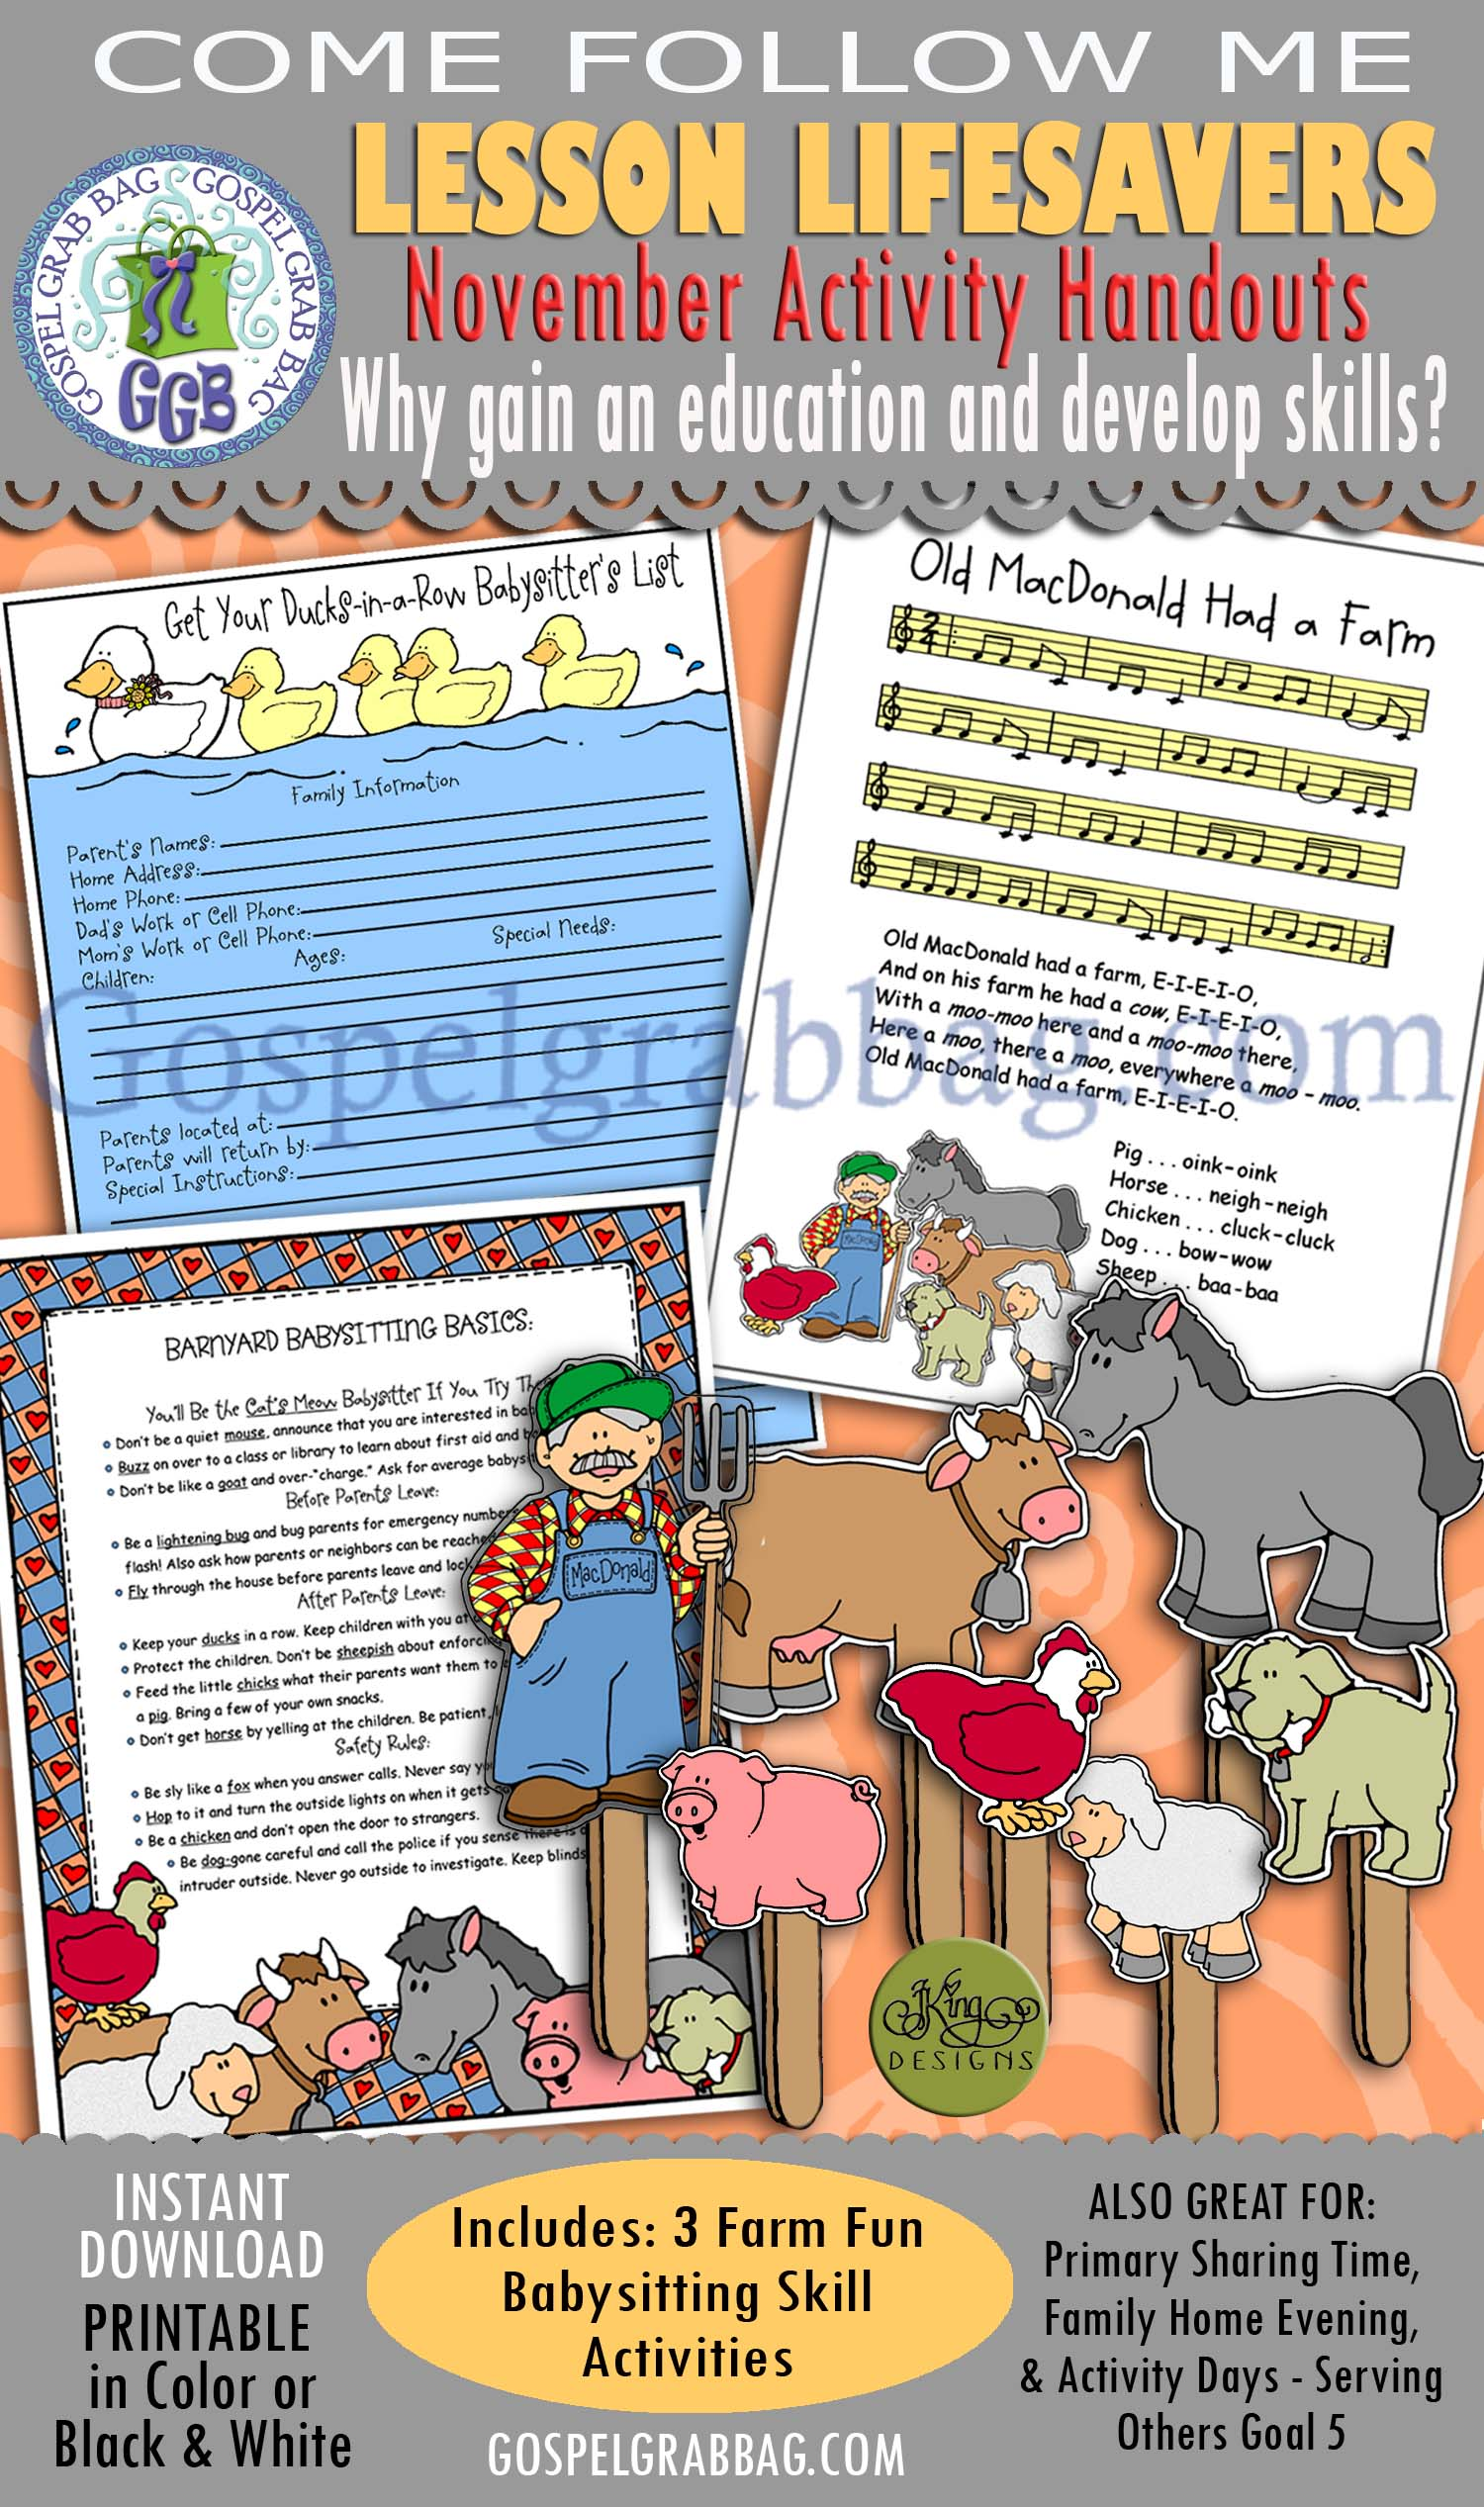 "$4.00 KIT: Come Follow Me November ""Why is it important to gain an education & develop skills?"" CHILD CARE: Babysitting Basics: Ducks-in-a-Row List, Old MacDonald Song, Basics & Puppet Show"